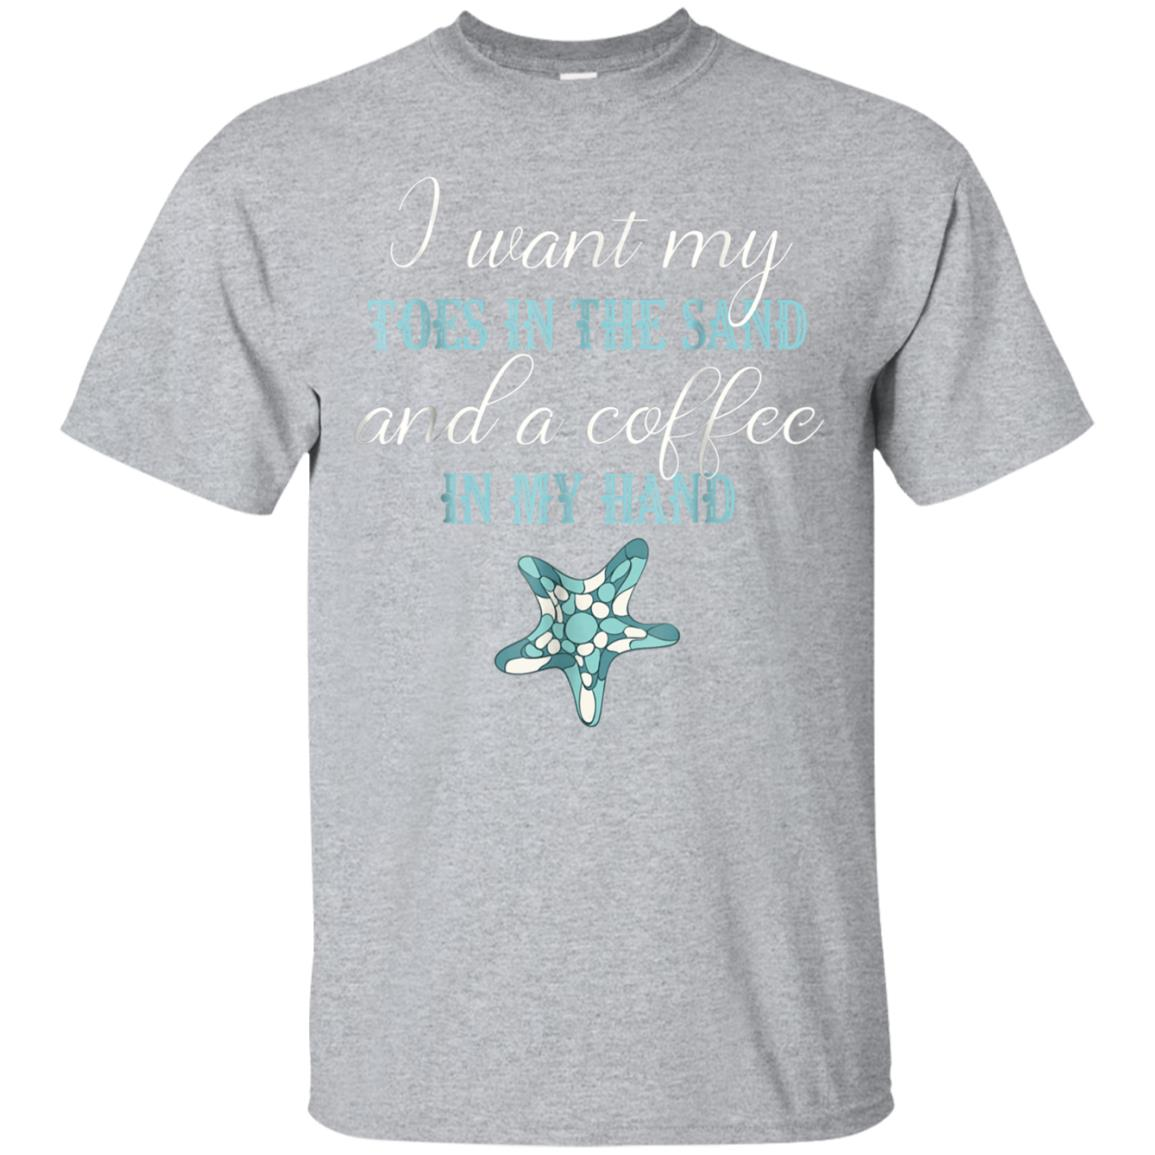 Toes In The Sand Beach Life TShirt Coffee Lover Shirt 99promocode